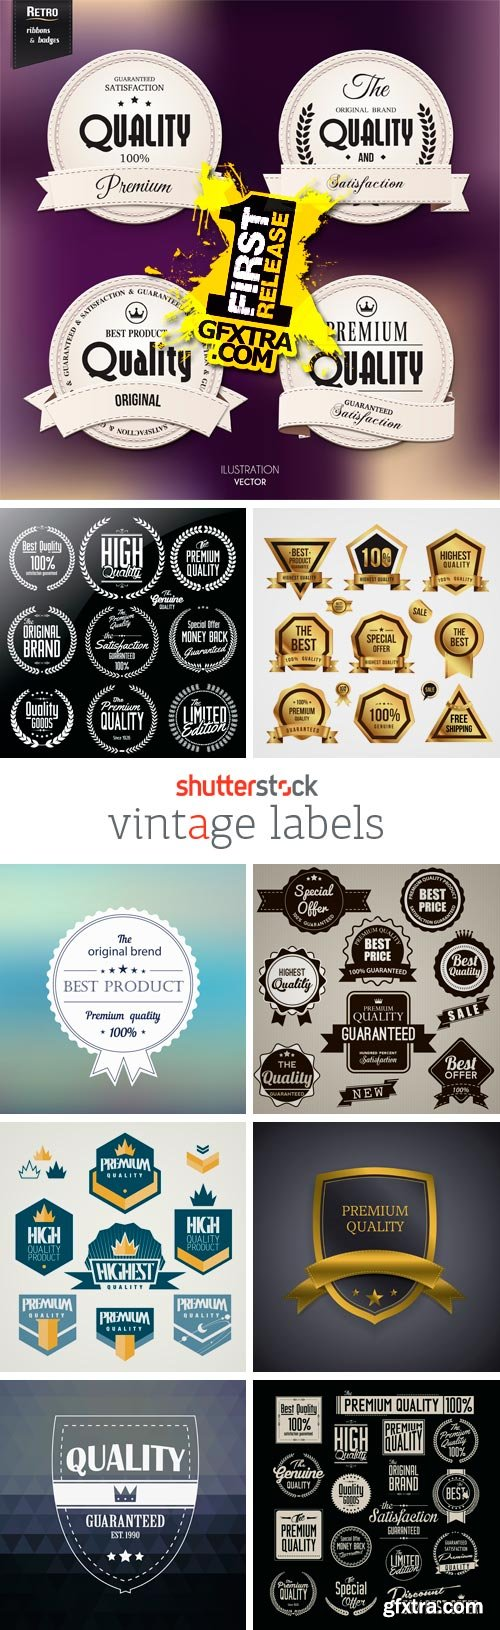 Amazing SS - Vintage Labels, 24xEPS